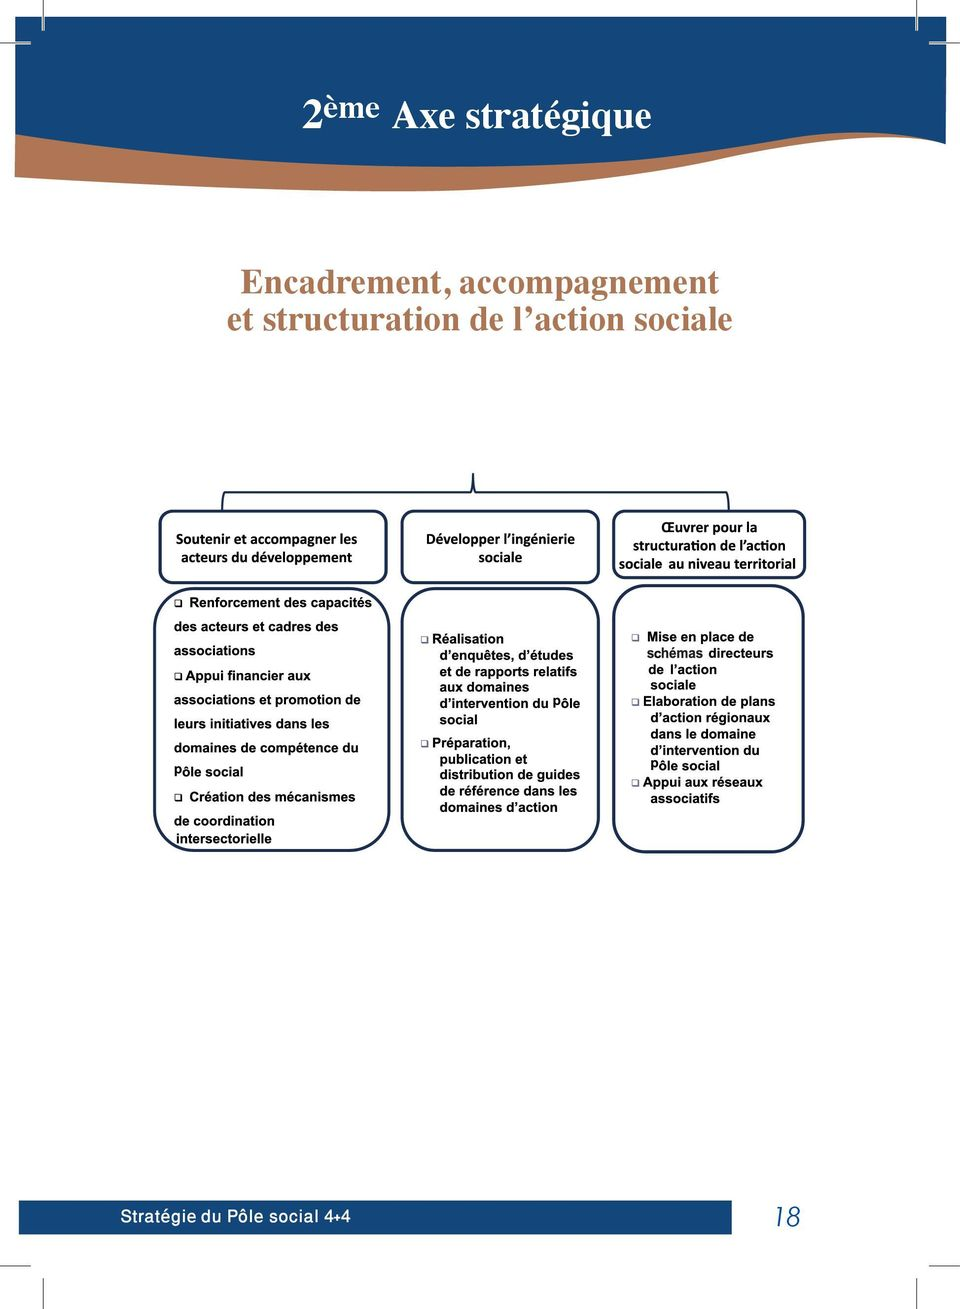 accompagnement et